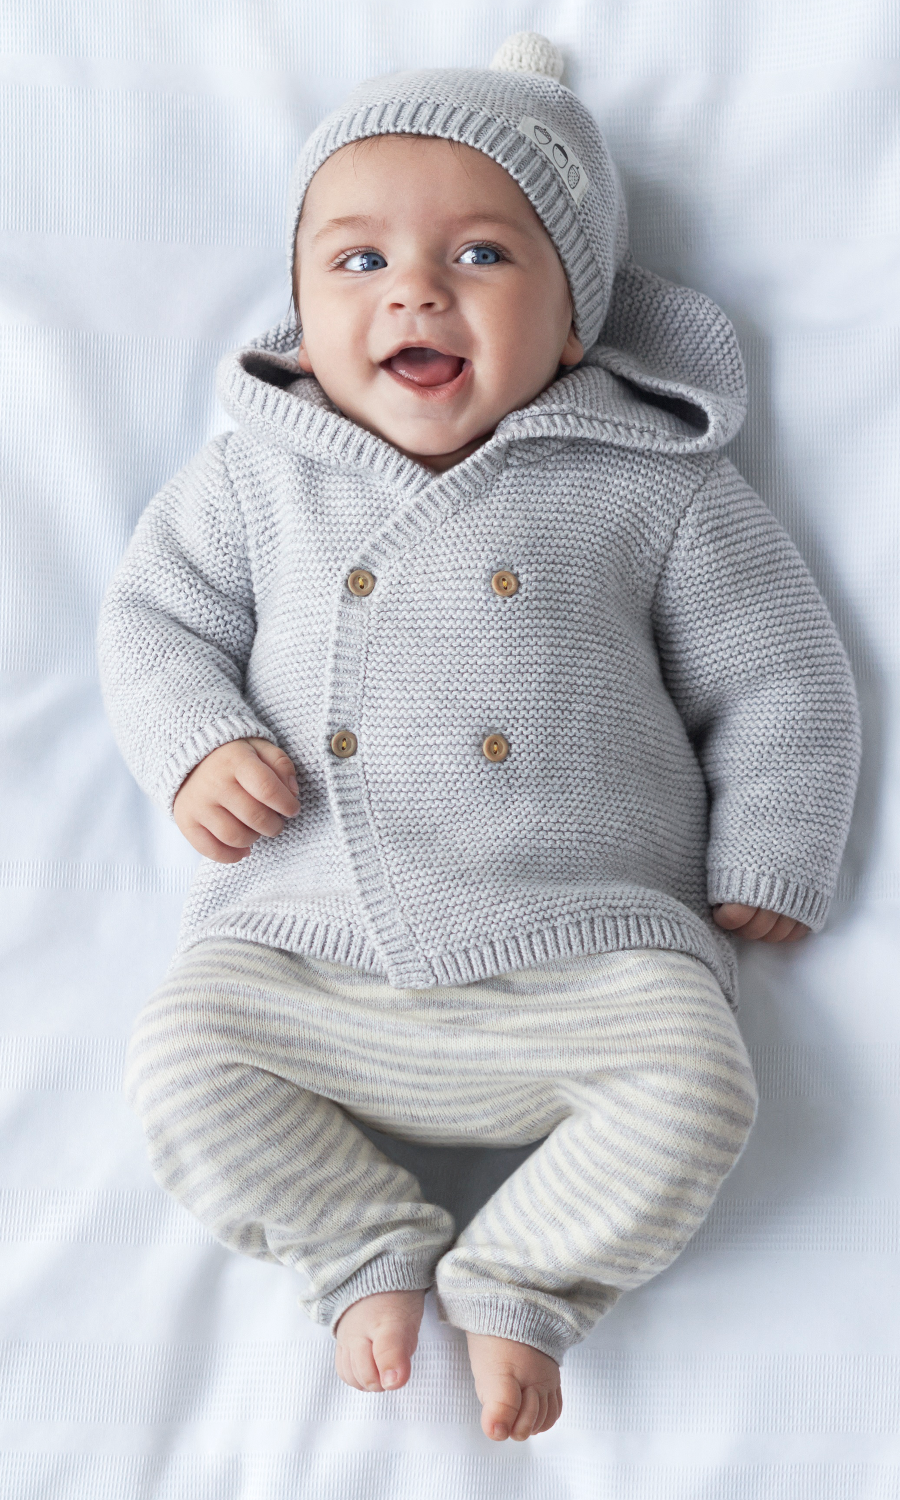 H&M newborn collection